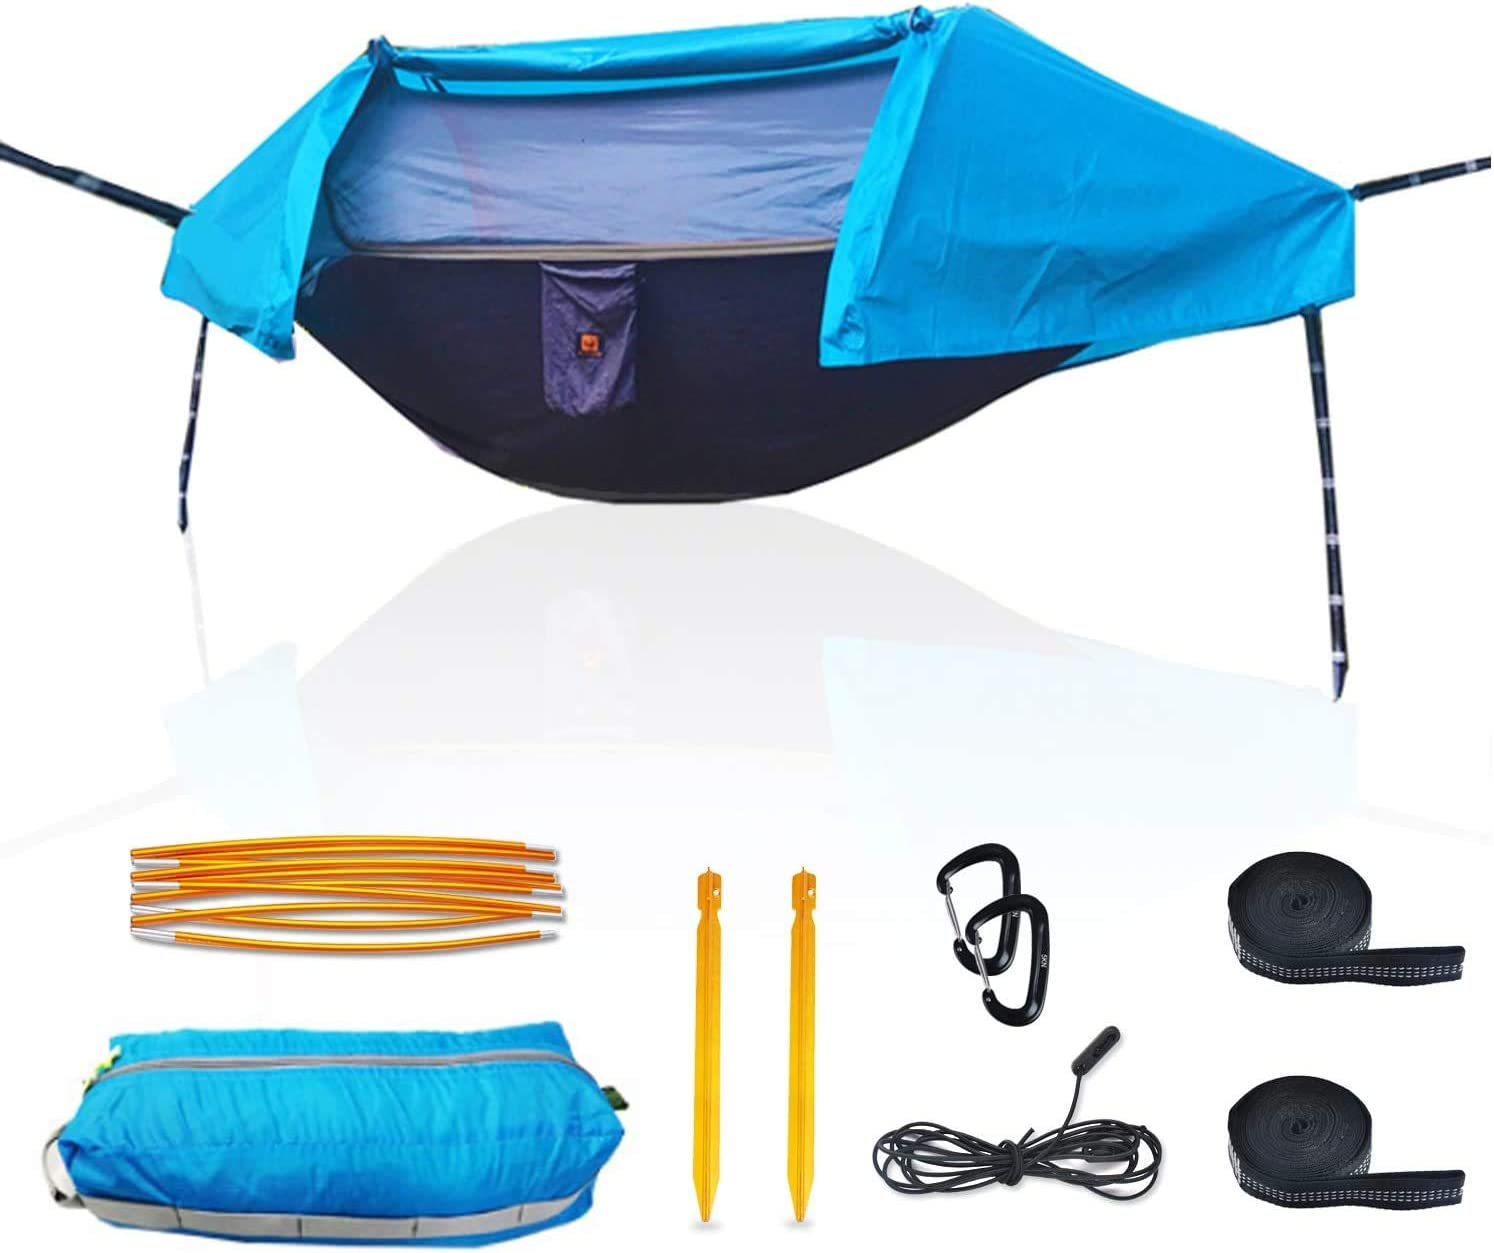 OHMU Camping Hammock with Mosquito Net and Rainfly Cover Portable Hammock Tent Blue